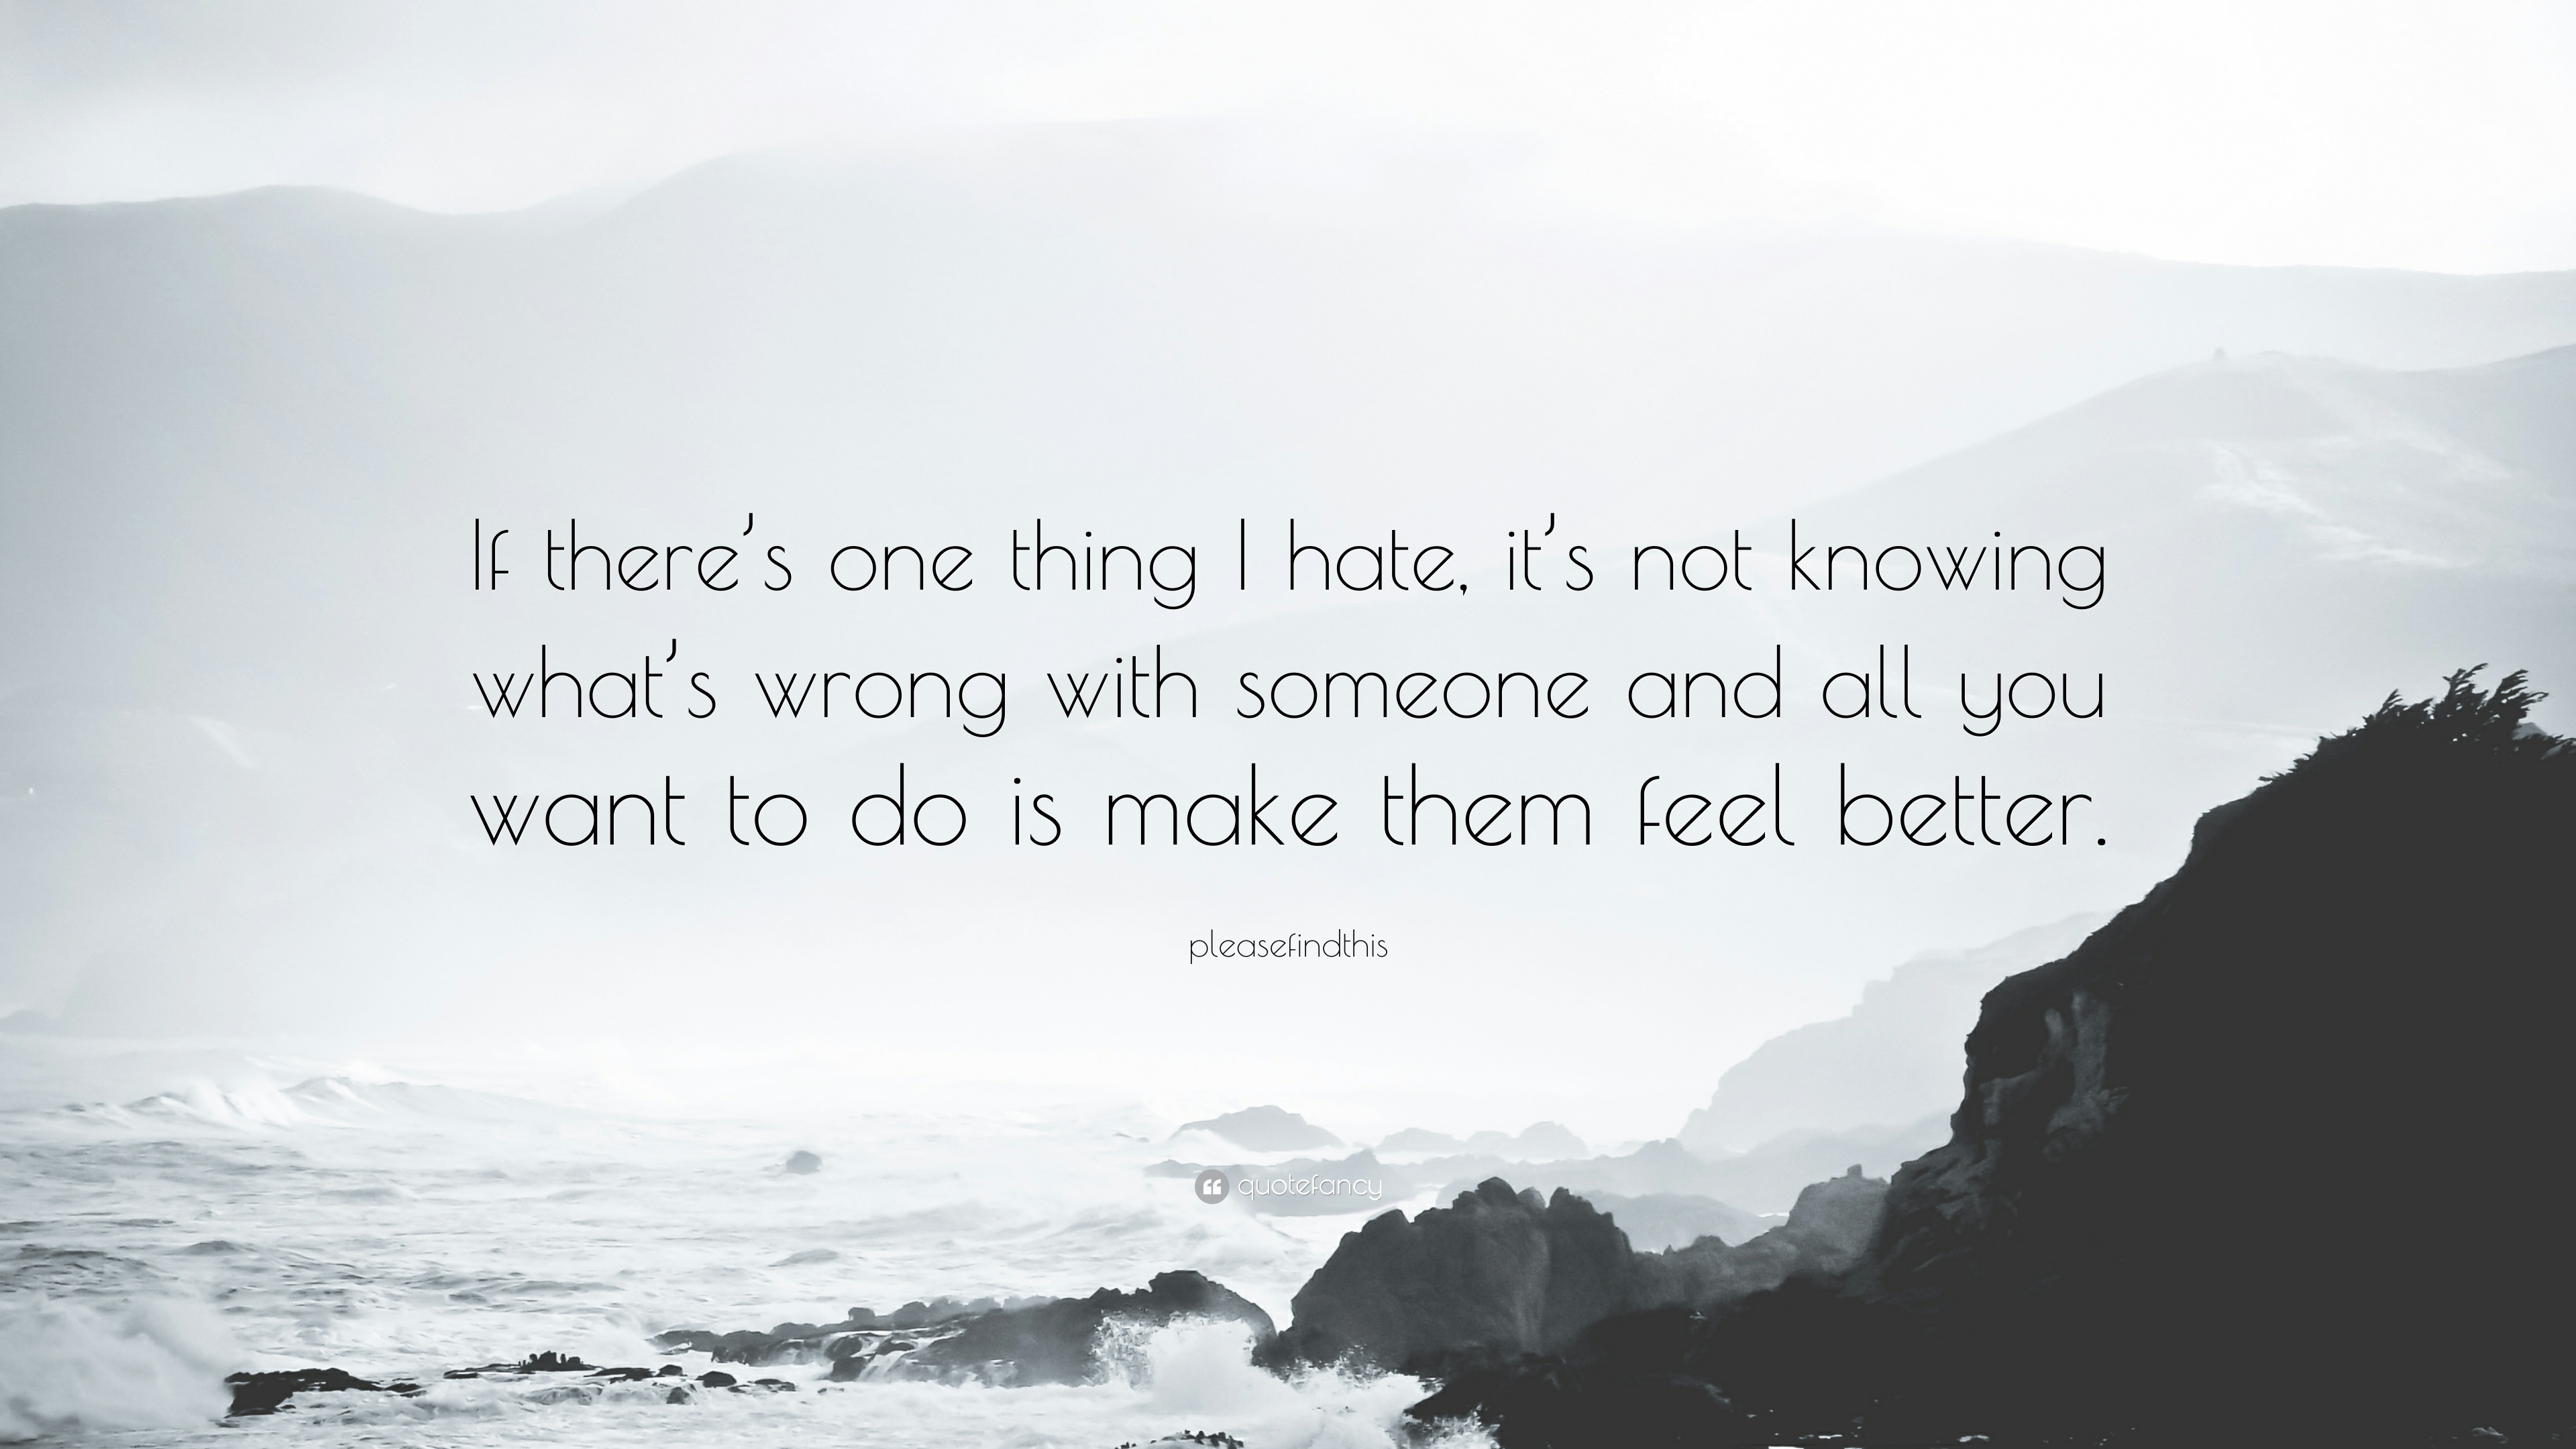 Pleasefindthis Quote If Theres One Thing I Hate Its Not Knowing